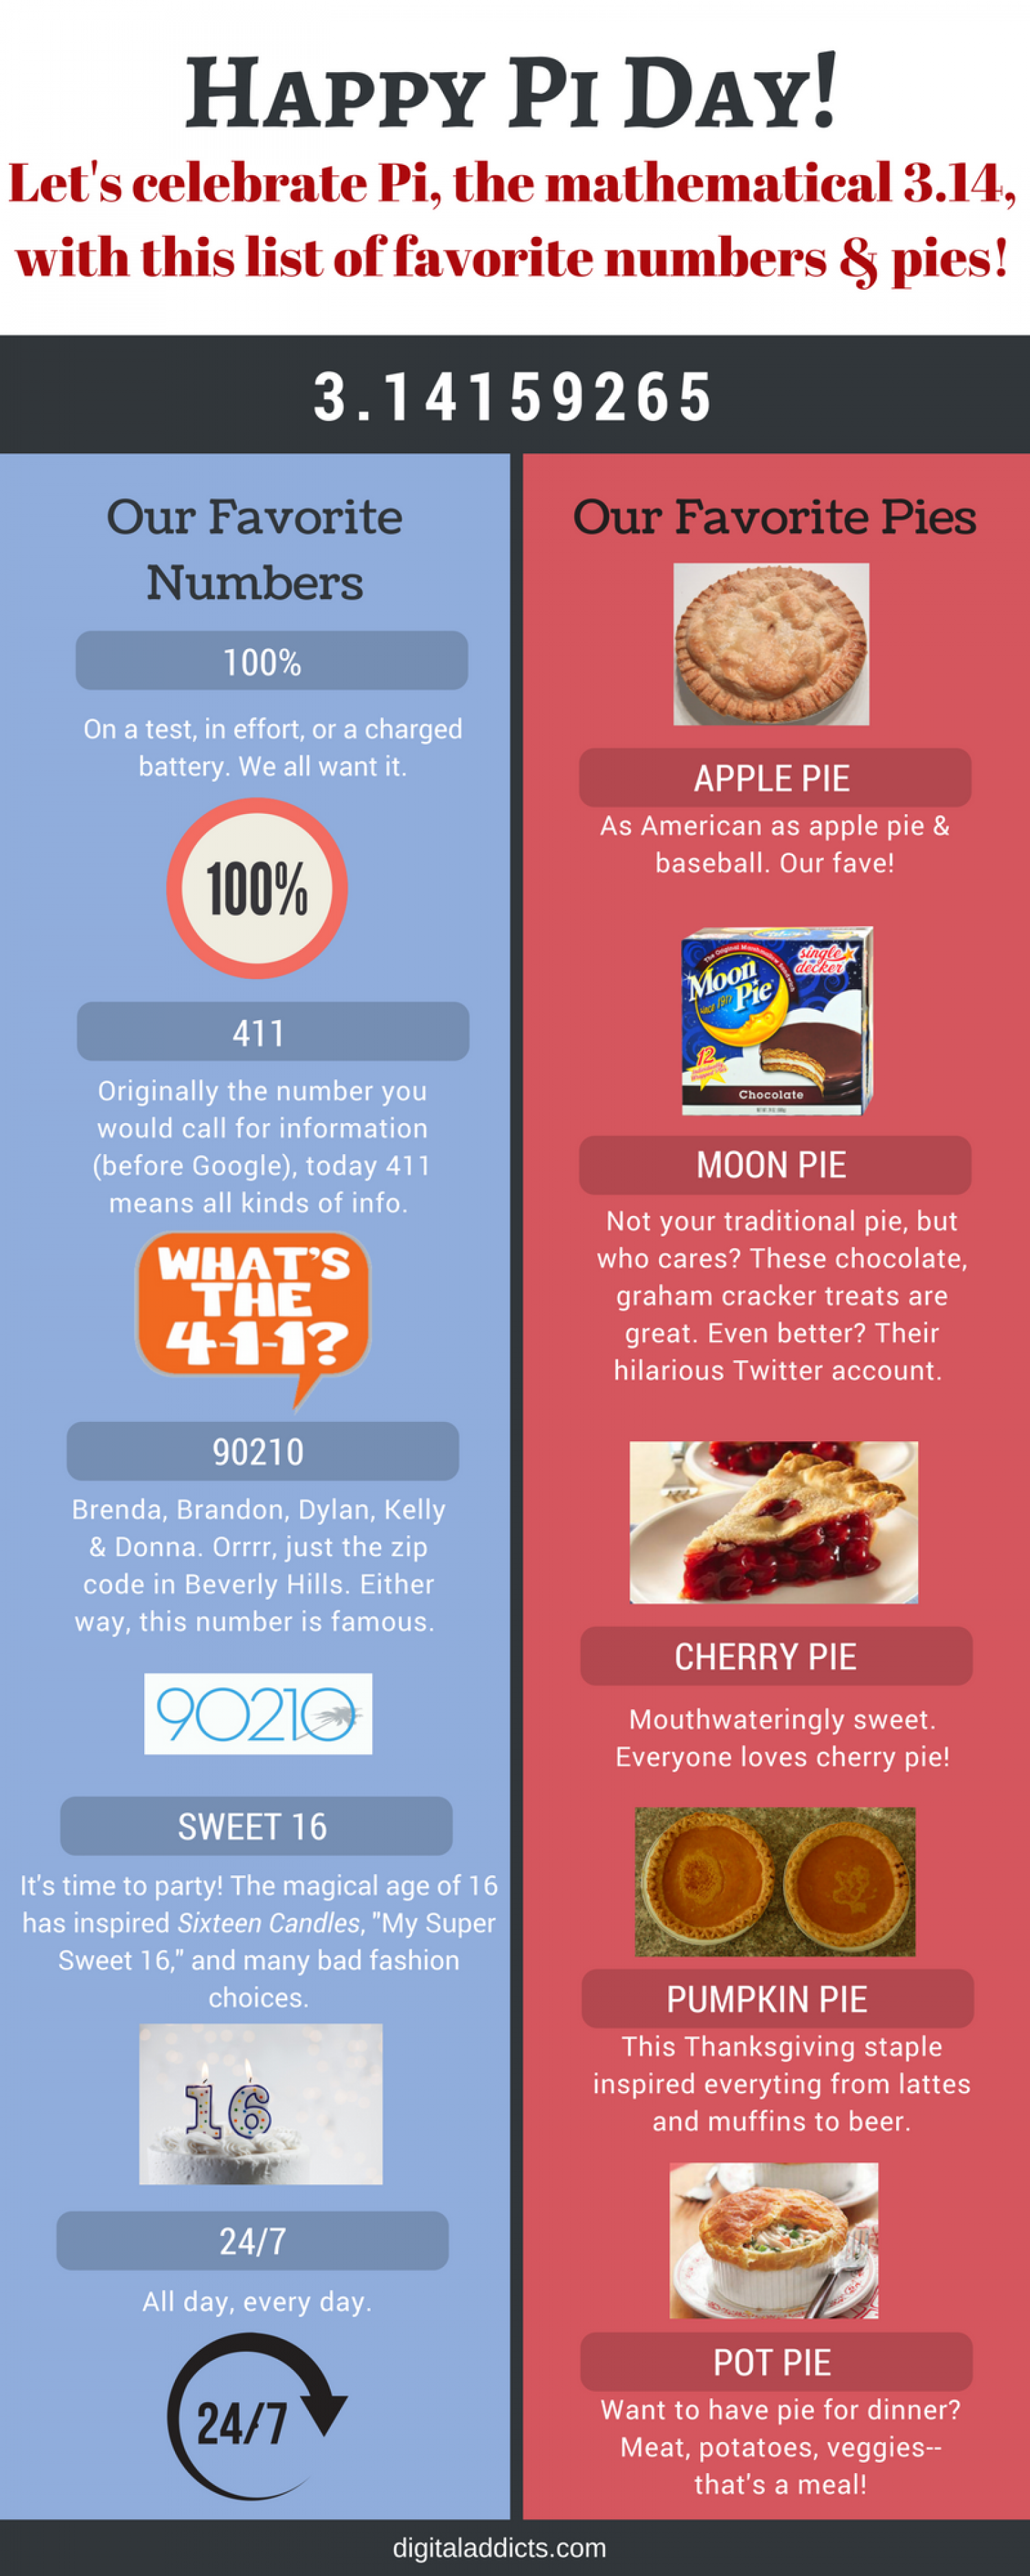 Happy Pi Day! Our Favorite Numbers and Pies! Infographic